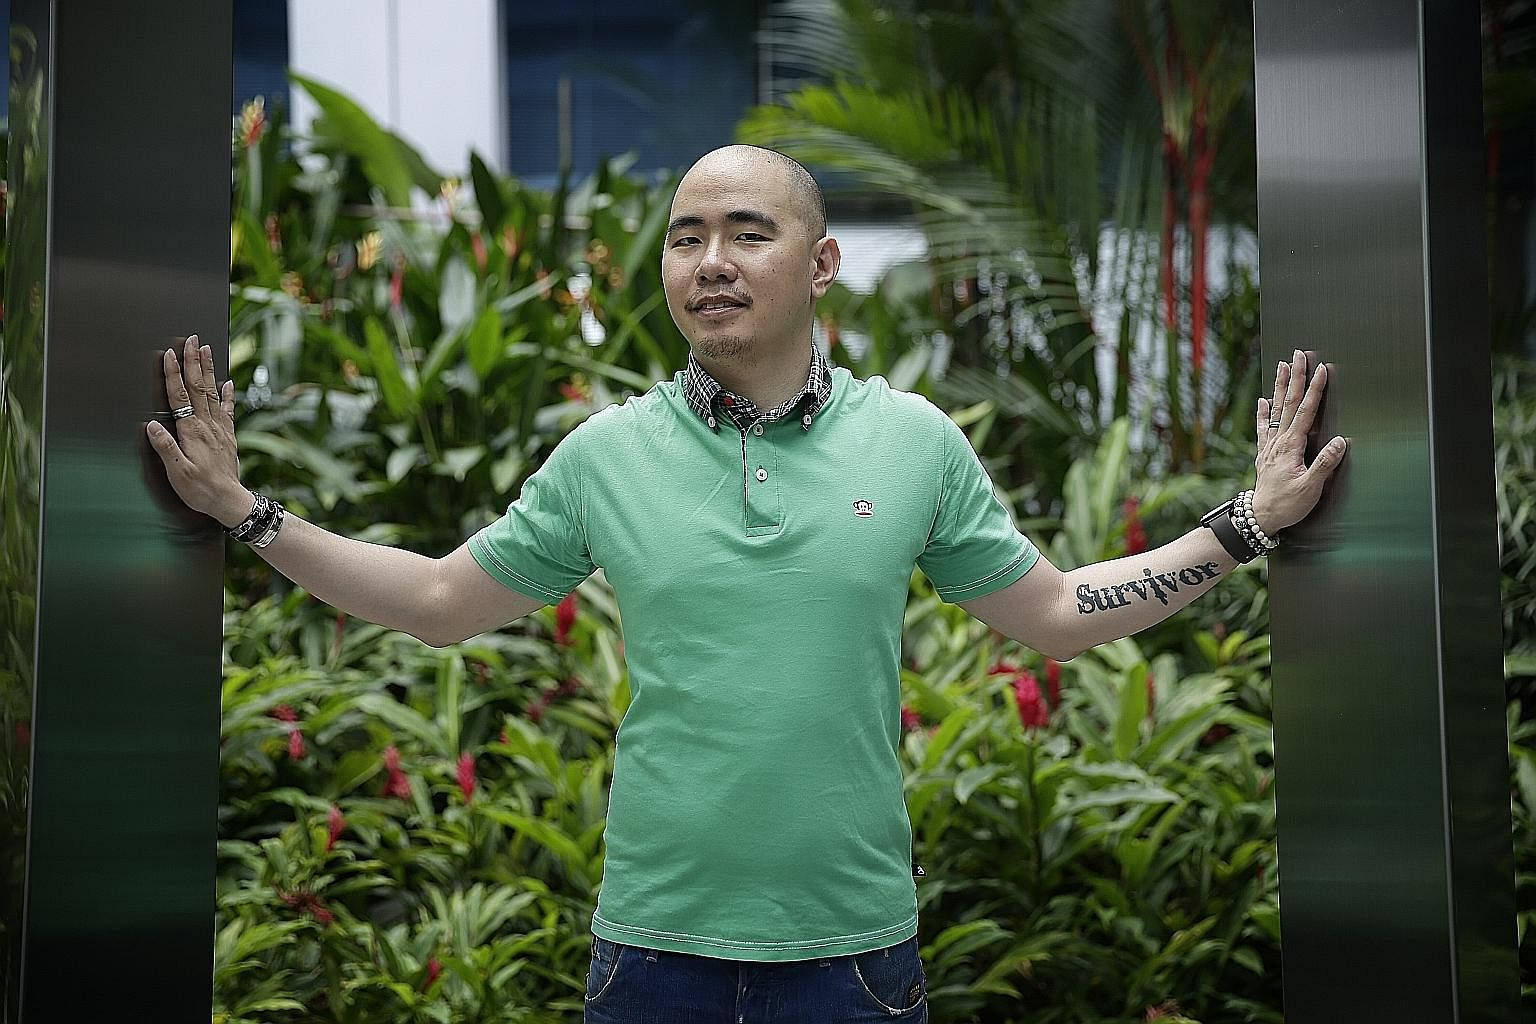 Mr Yip endured harrowing complications from treatment for his cancer, such as toxoplasmosis and partial paralysis. On his forearm is a tattoo of the word Survivor, which serves as a reminder of how he conquered his medical nightmare.